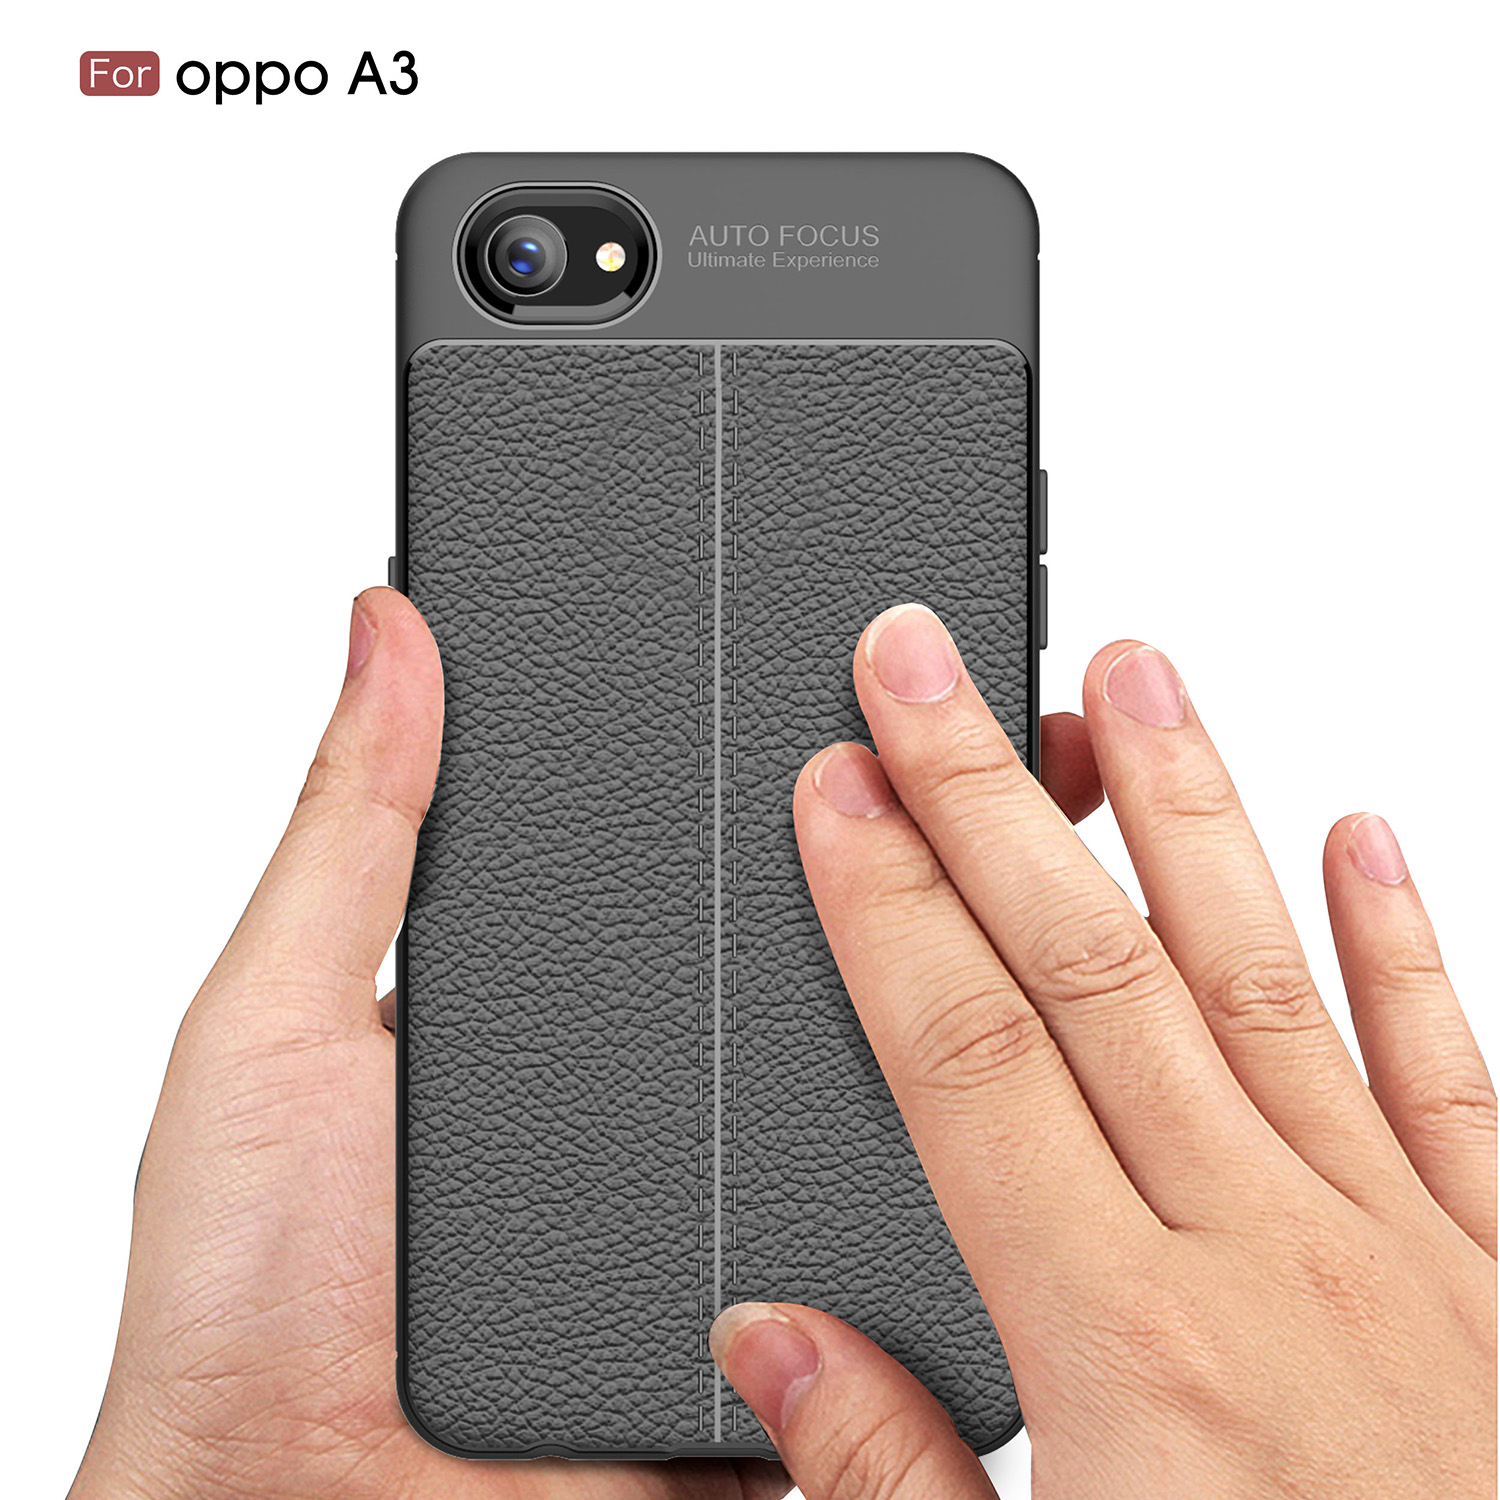 Cover Oppo A3 Case Rubber Silicone Phone Shell HATOLY Protective Soft Phone Case Cover for Oppo A3 Case for Oppo A3 in Fitted Cases from Cellphones